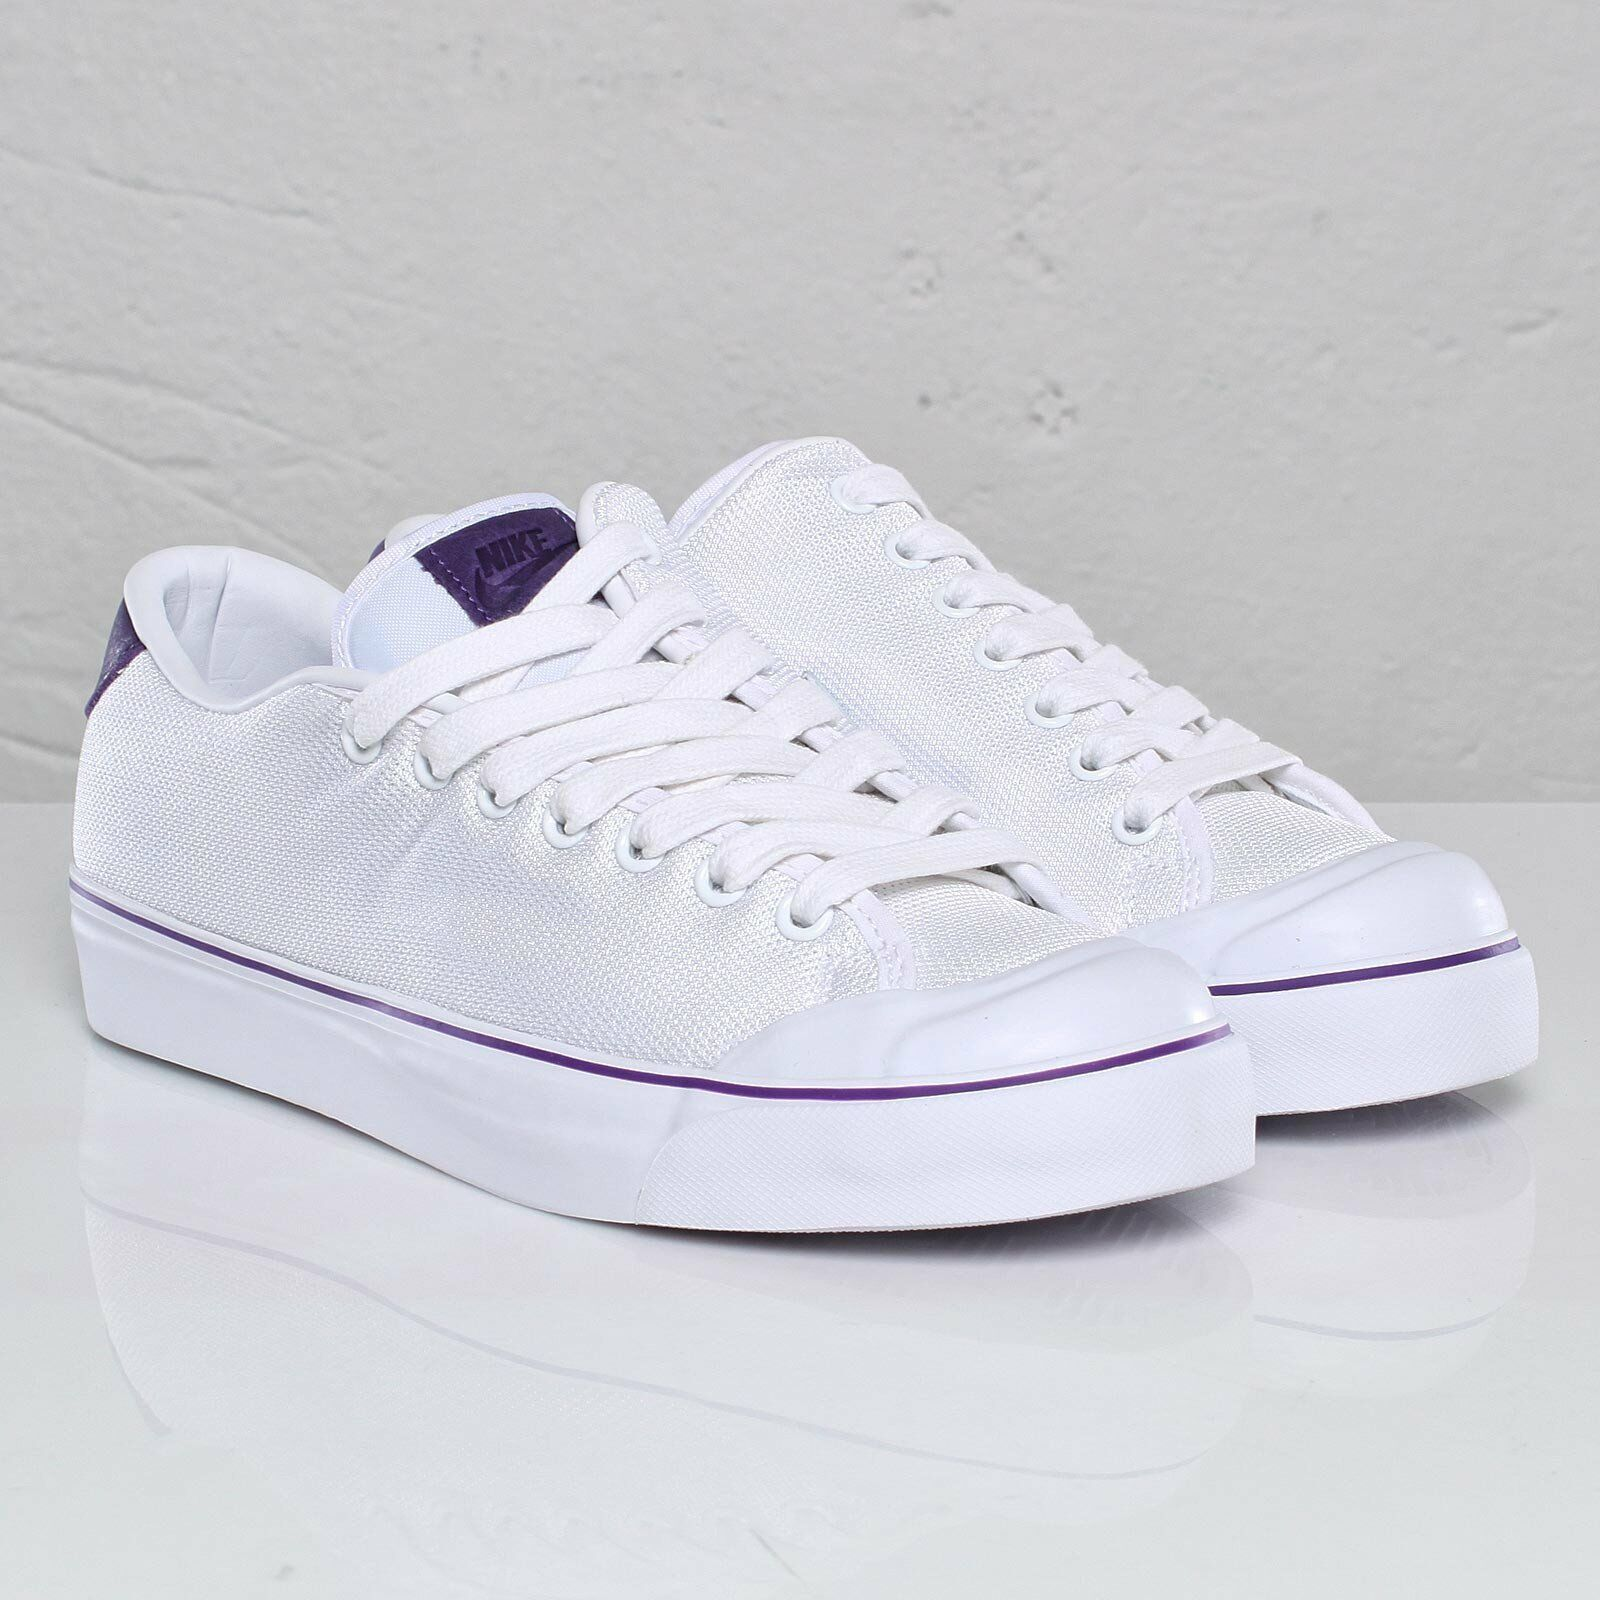 Nike White/Purple ALL COURT TWIST Neu Gr:46 US:12 White/Purple Nike Sommer Sneaker Capri flash da2abd